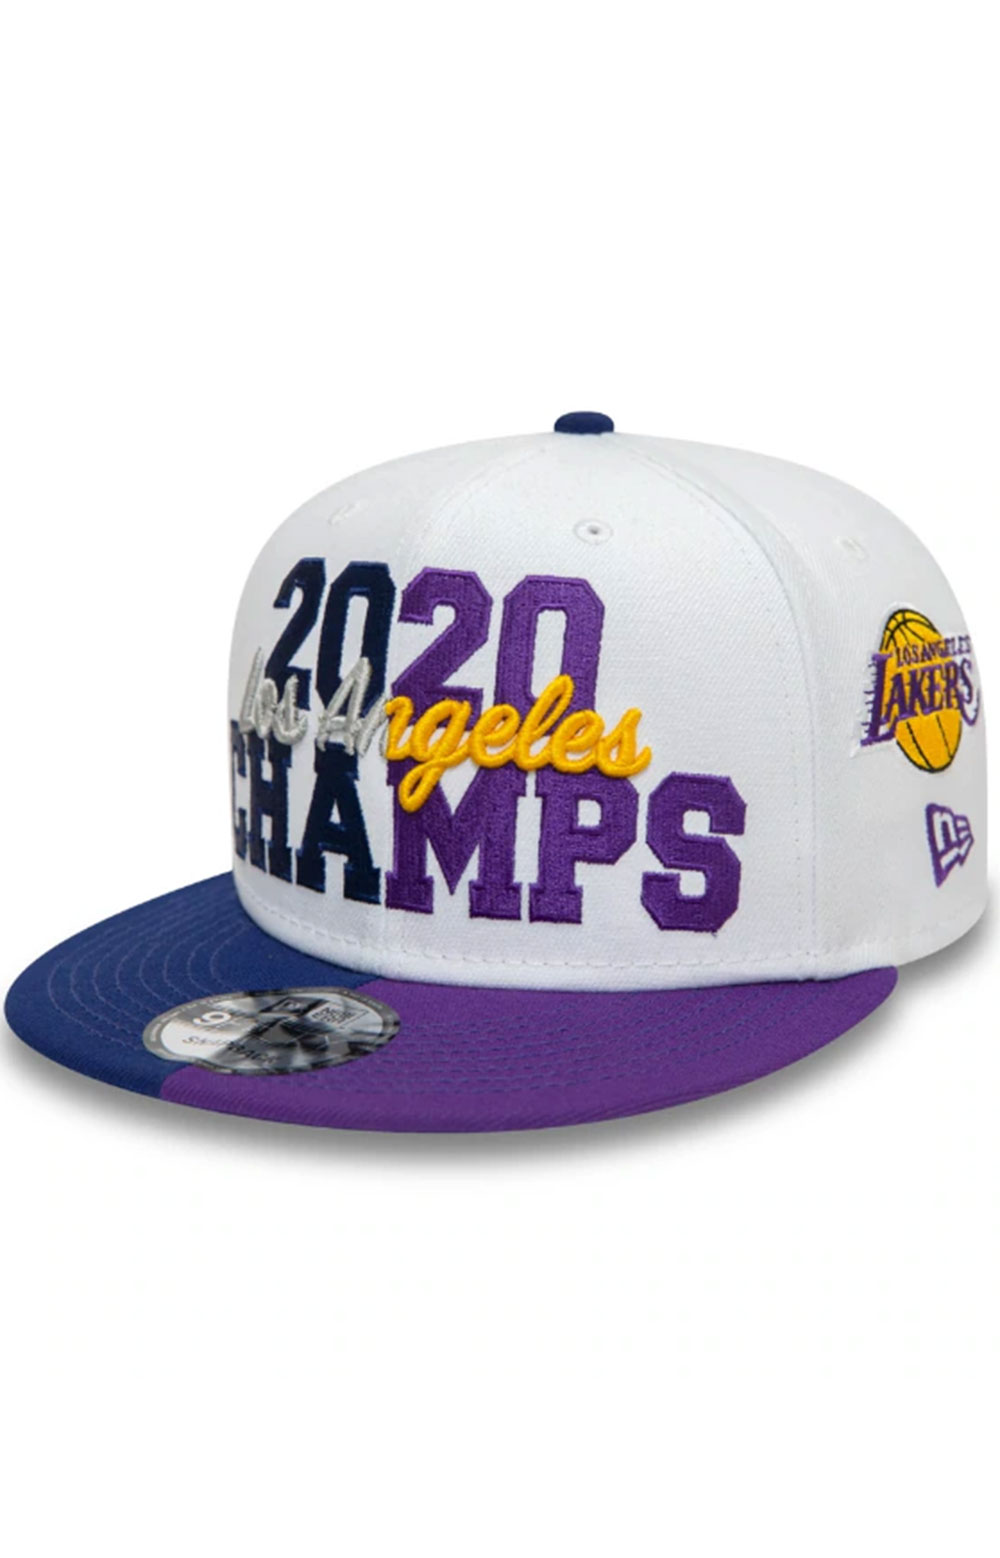 Los Angeles Co Champs 2020 9FIFTY Snap-Back - White